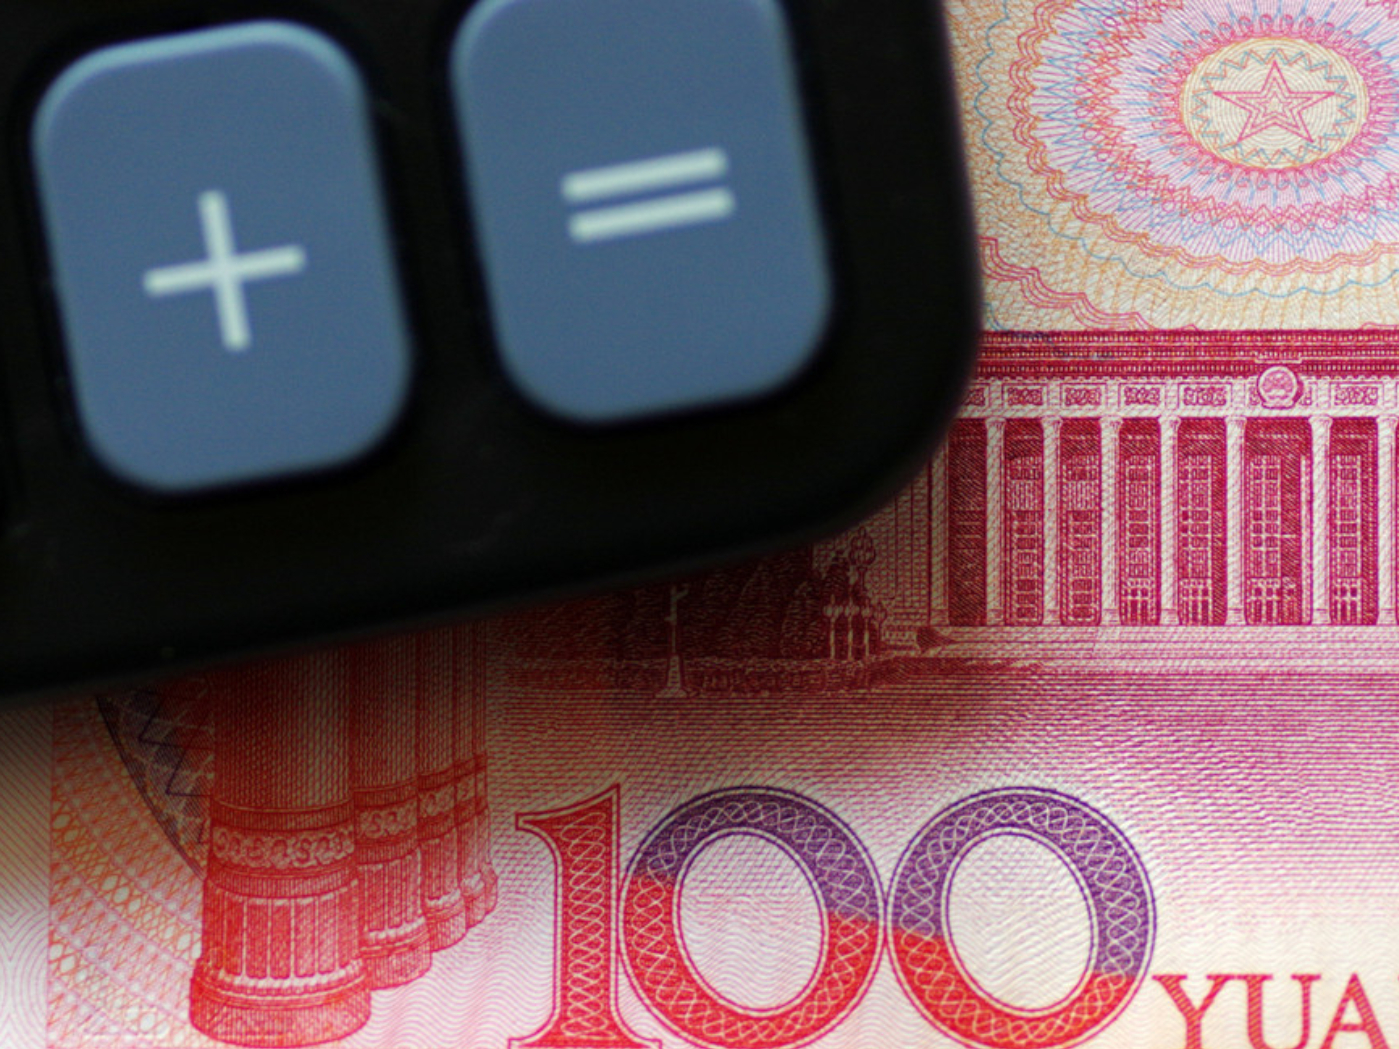 China's privately offered funds expand in 2019